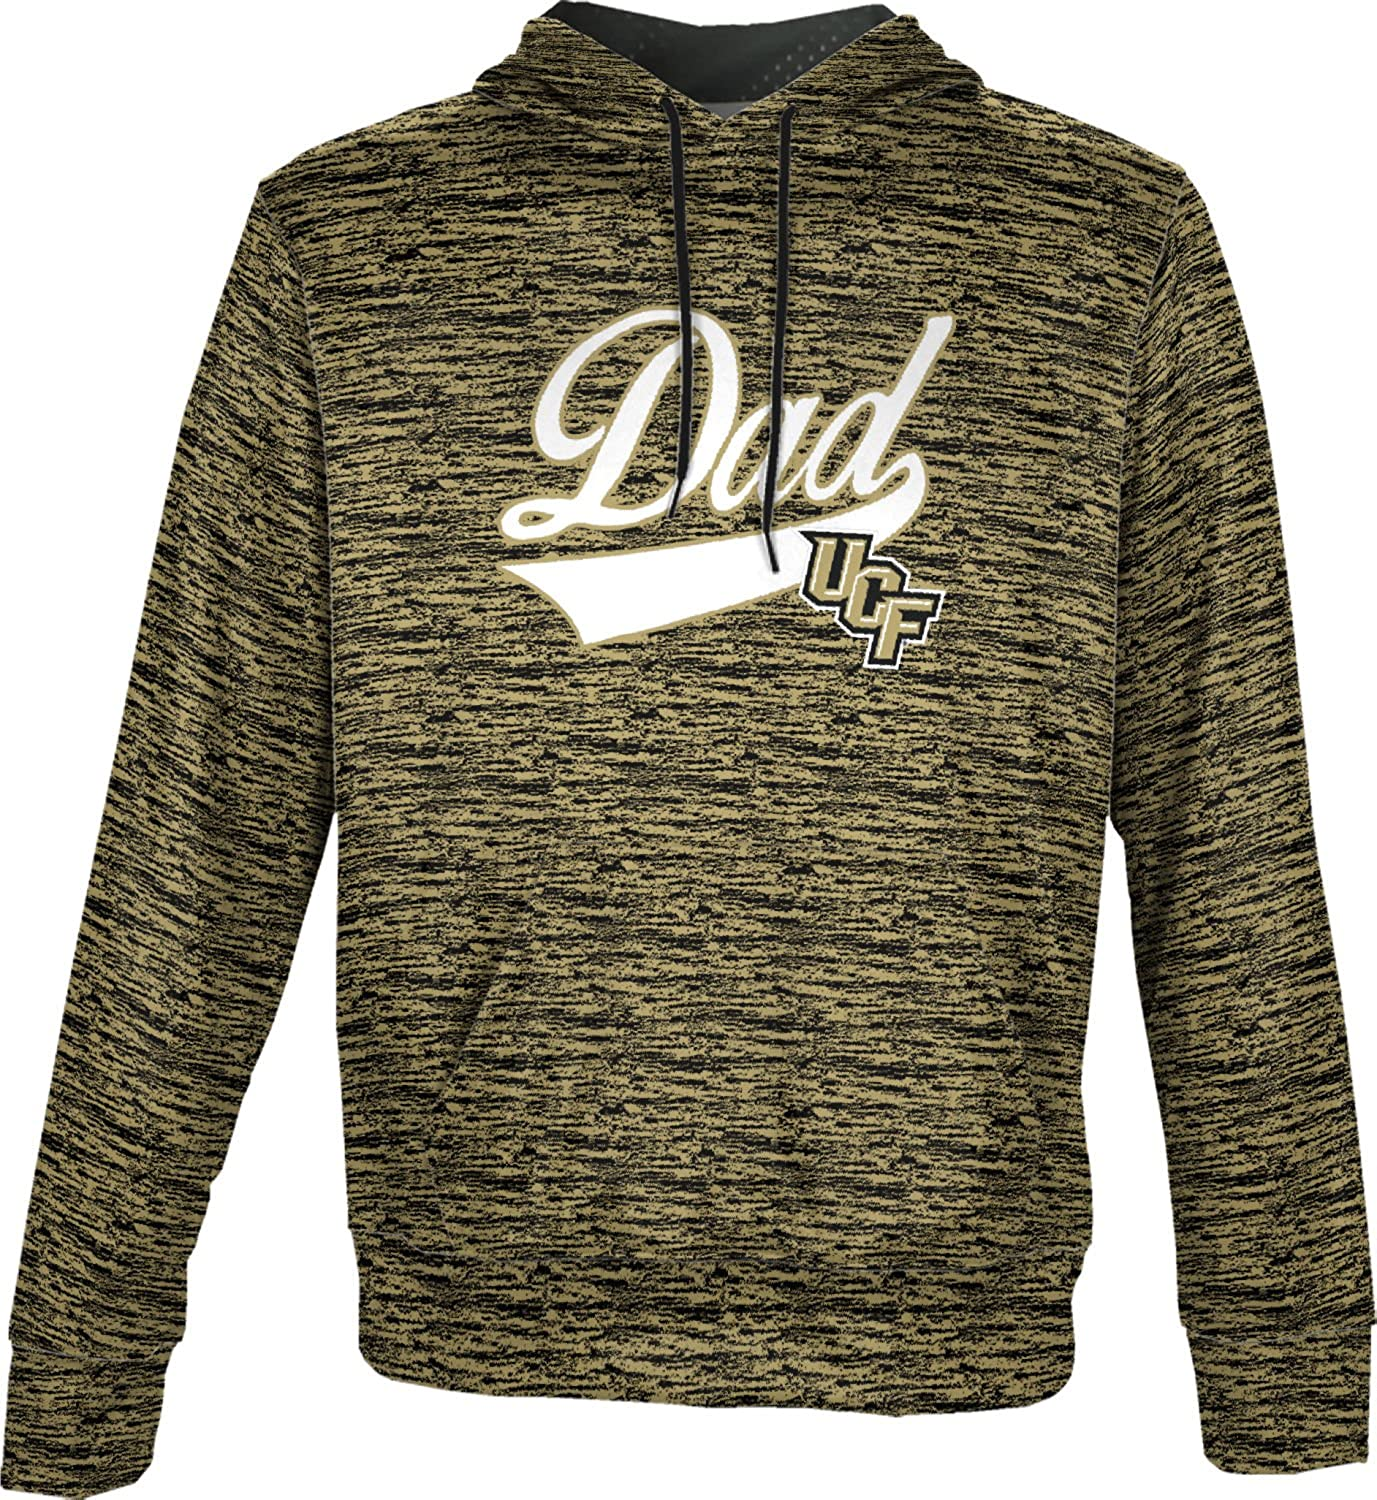 School Spirit Sweatshirt University of Central Florida Fathers Day Mens Pullover Hoodie Brushed